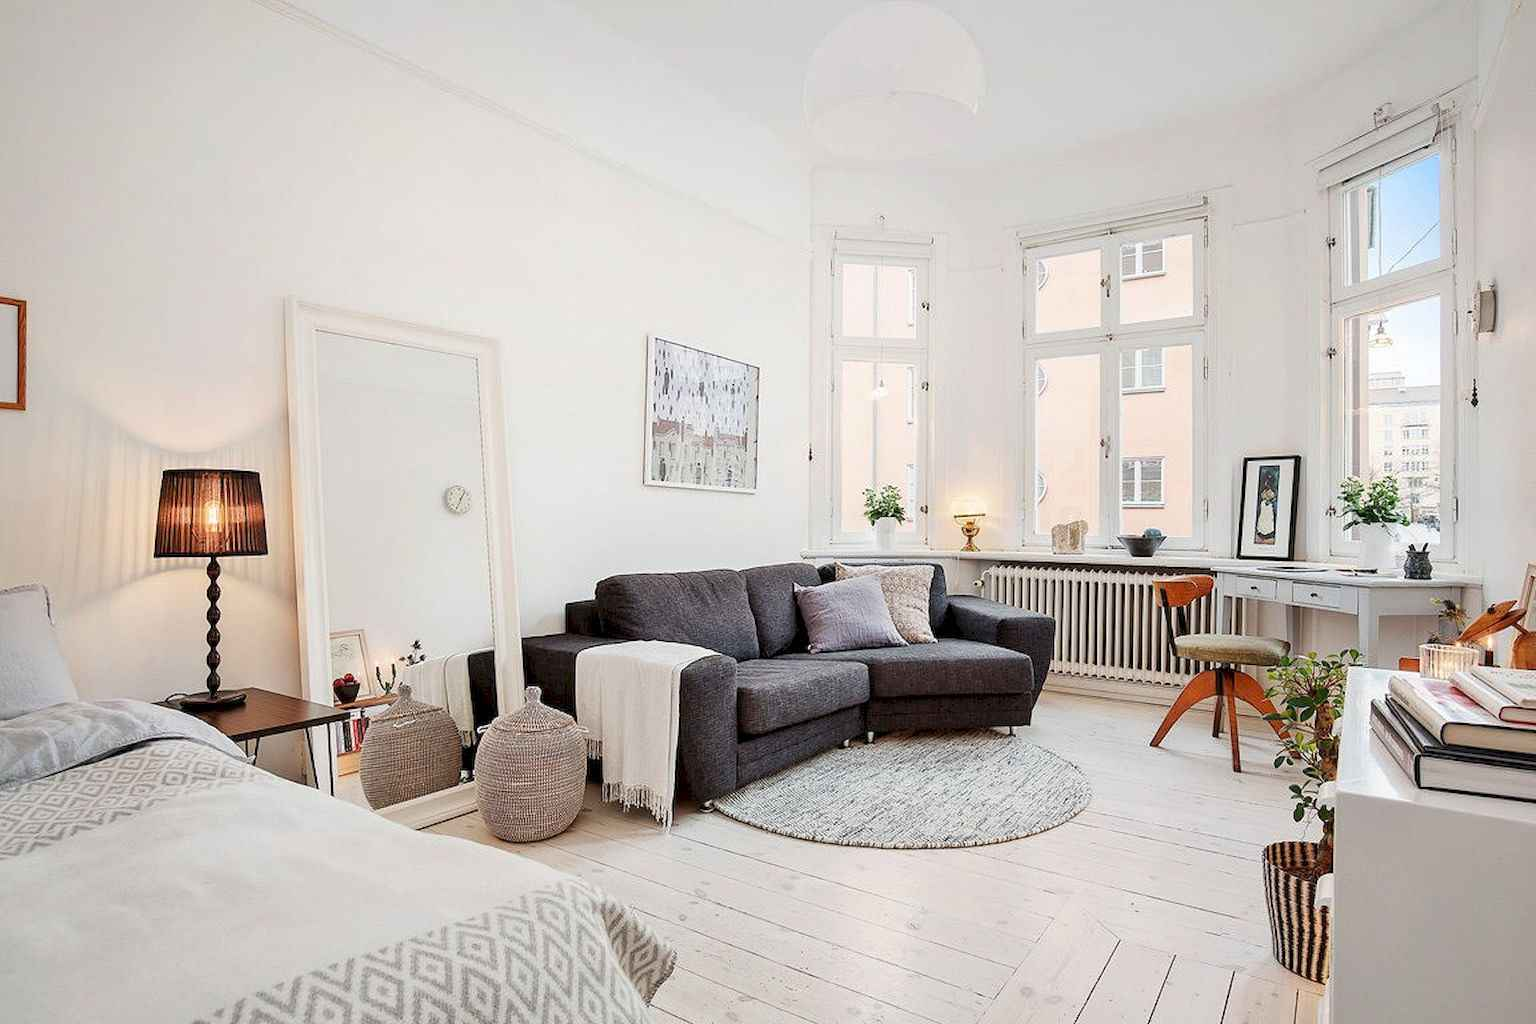 Cool small apartment decorating ideas on a budget (8)